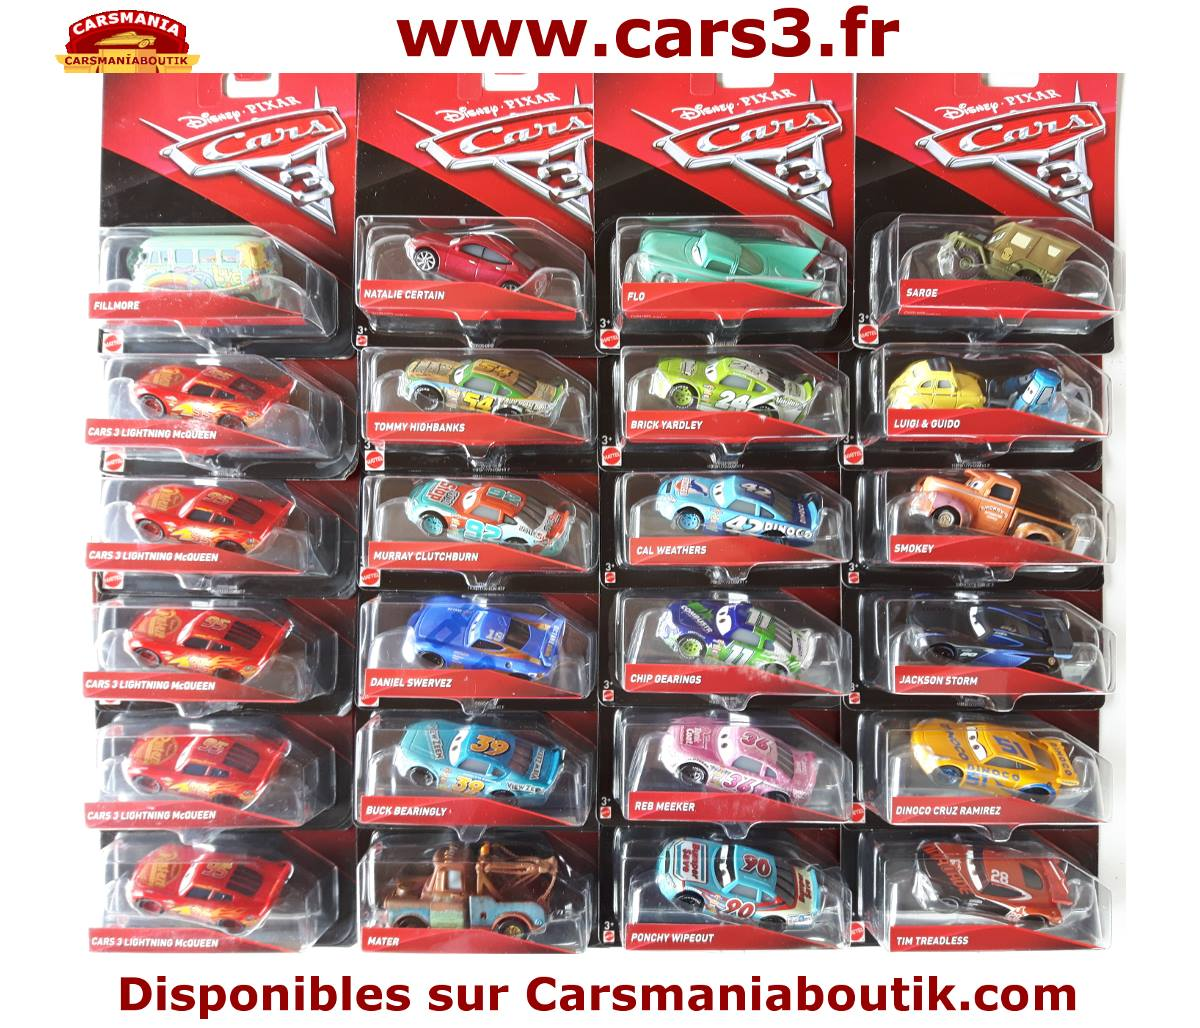 cars 3 les miniatures sont disponibles disneycarsmania. Black Bedroom Furniture Sets. Home Design Ideas